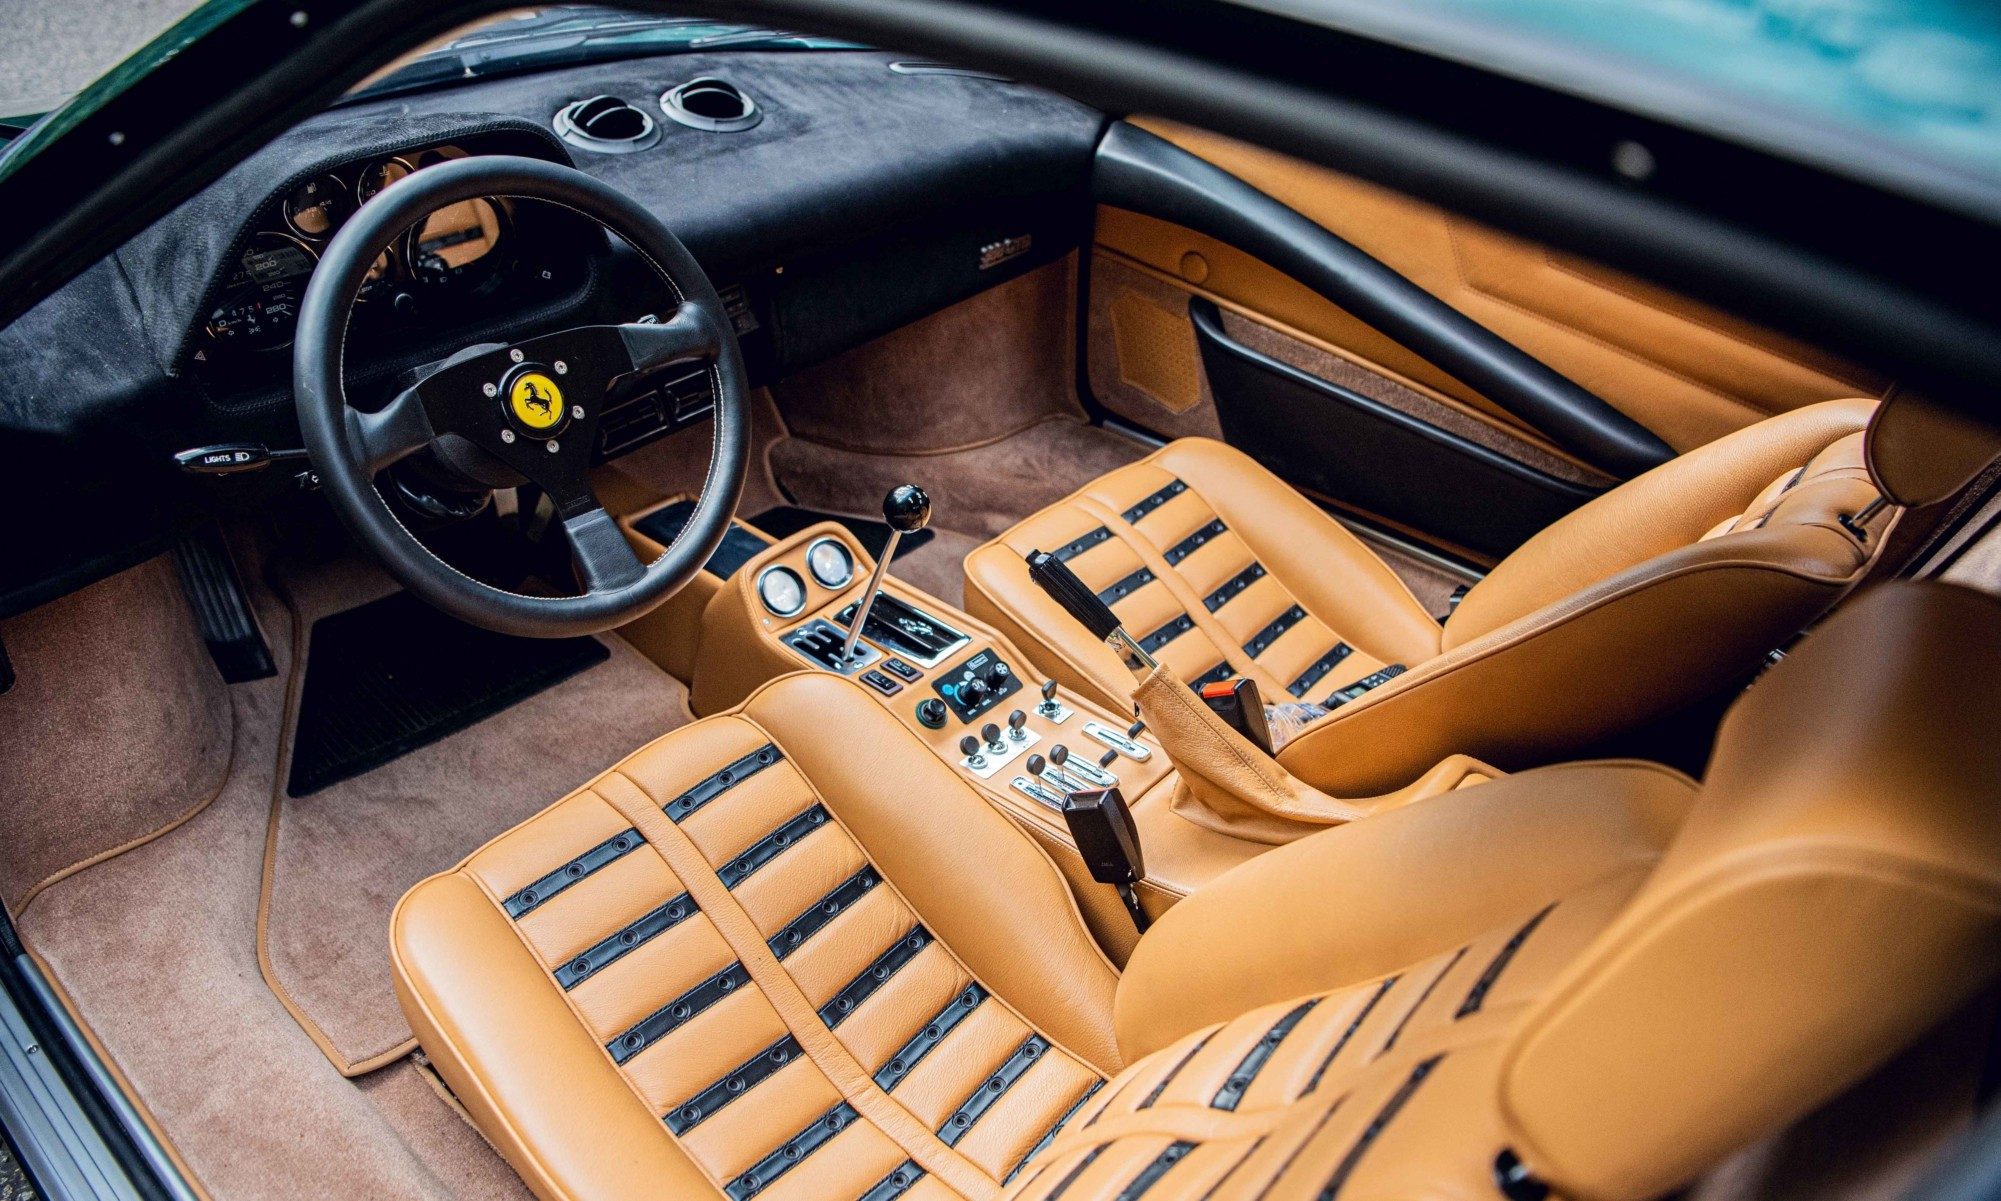 Moto Technique Ferrari 388 GTBi interior